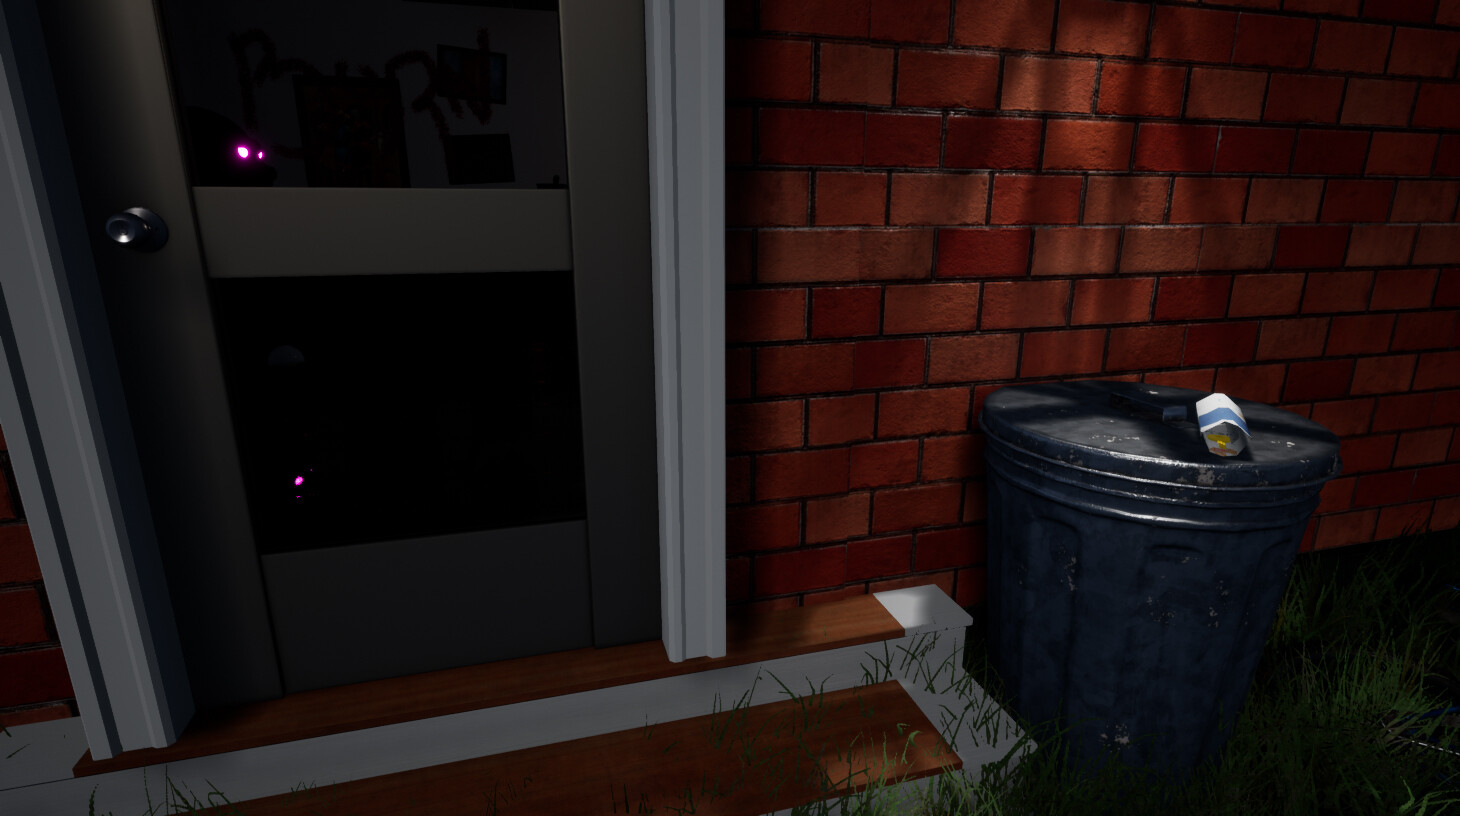 The first interactable door the player encounters is glass to show them that there is more that awaits them. There is a hidden key on the trash can beside hidden in a child's drawing. Playtesters thought this was frustrating so I removed the paper! :)